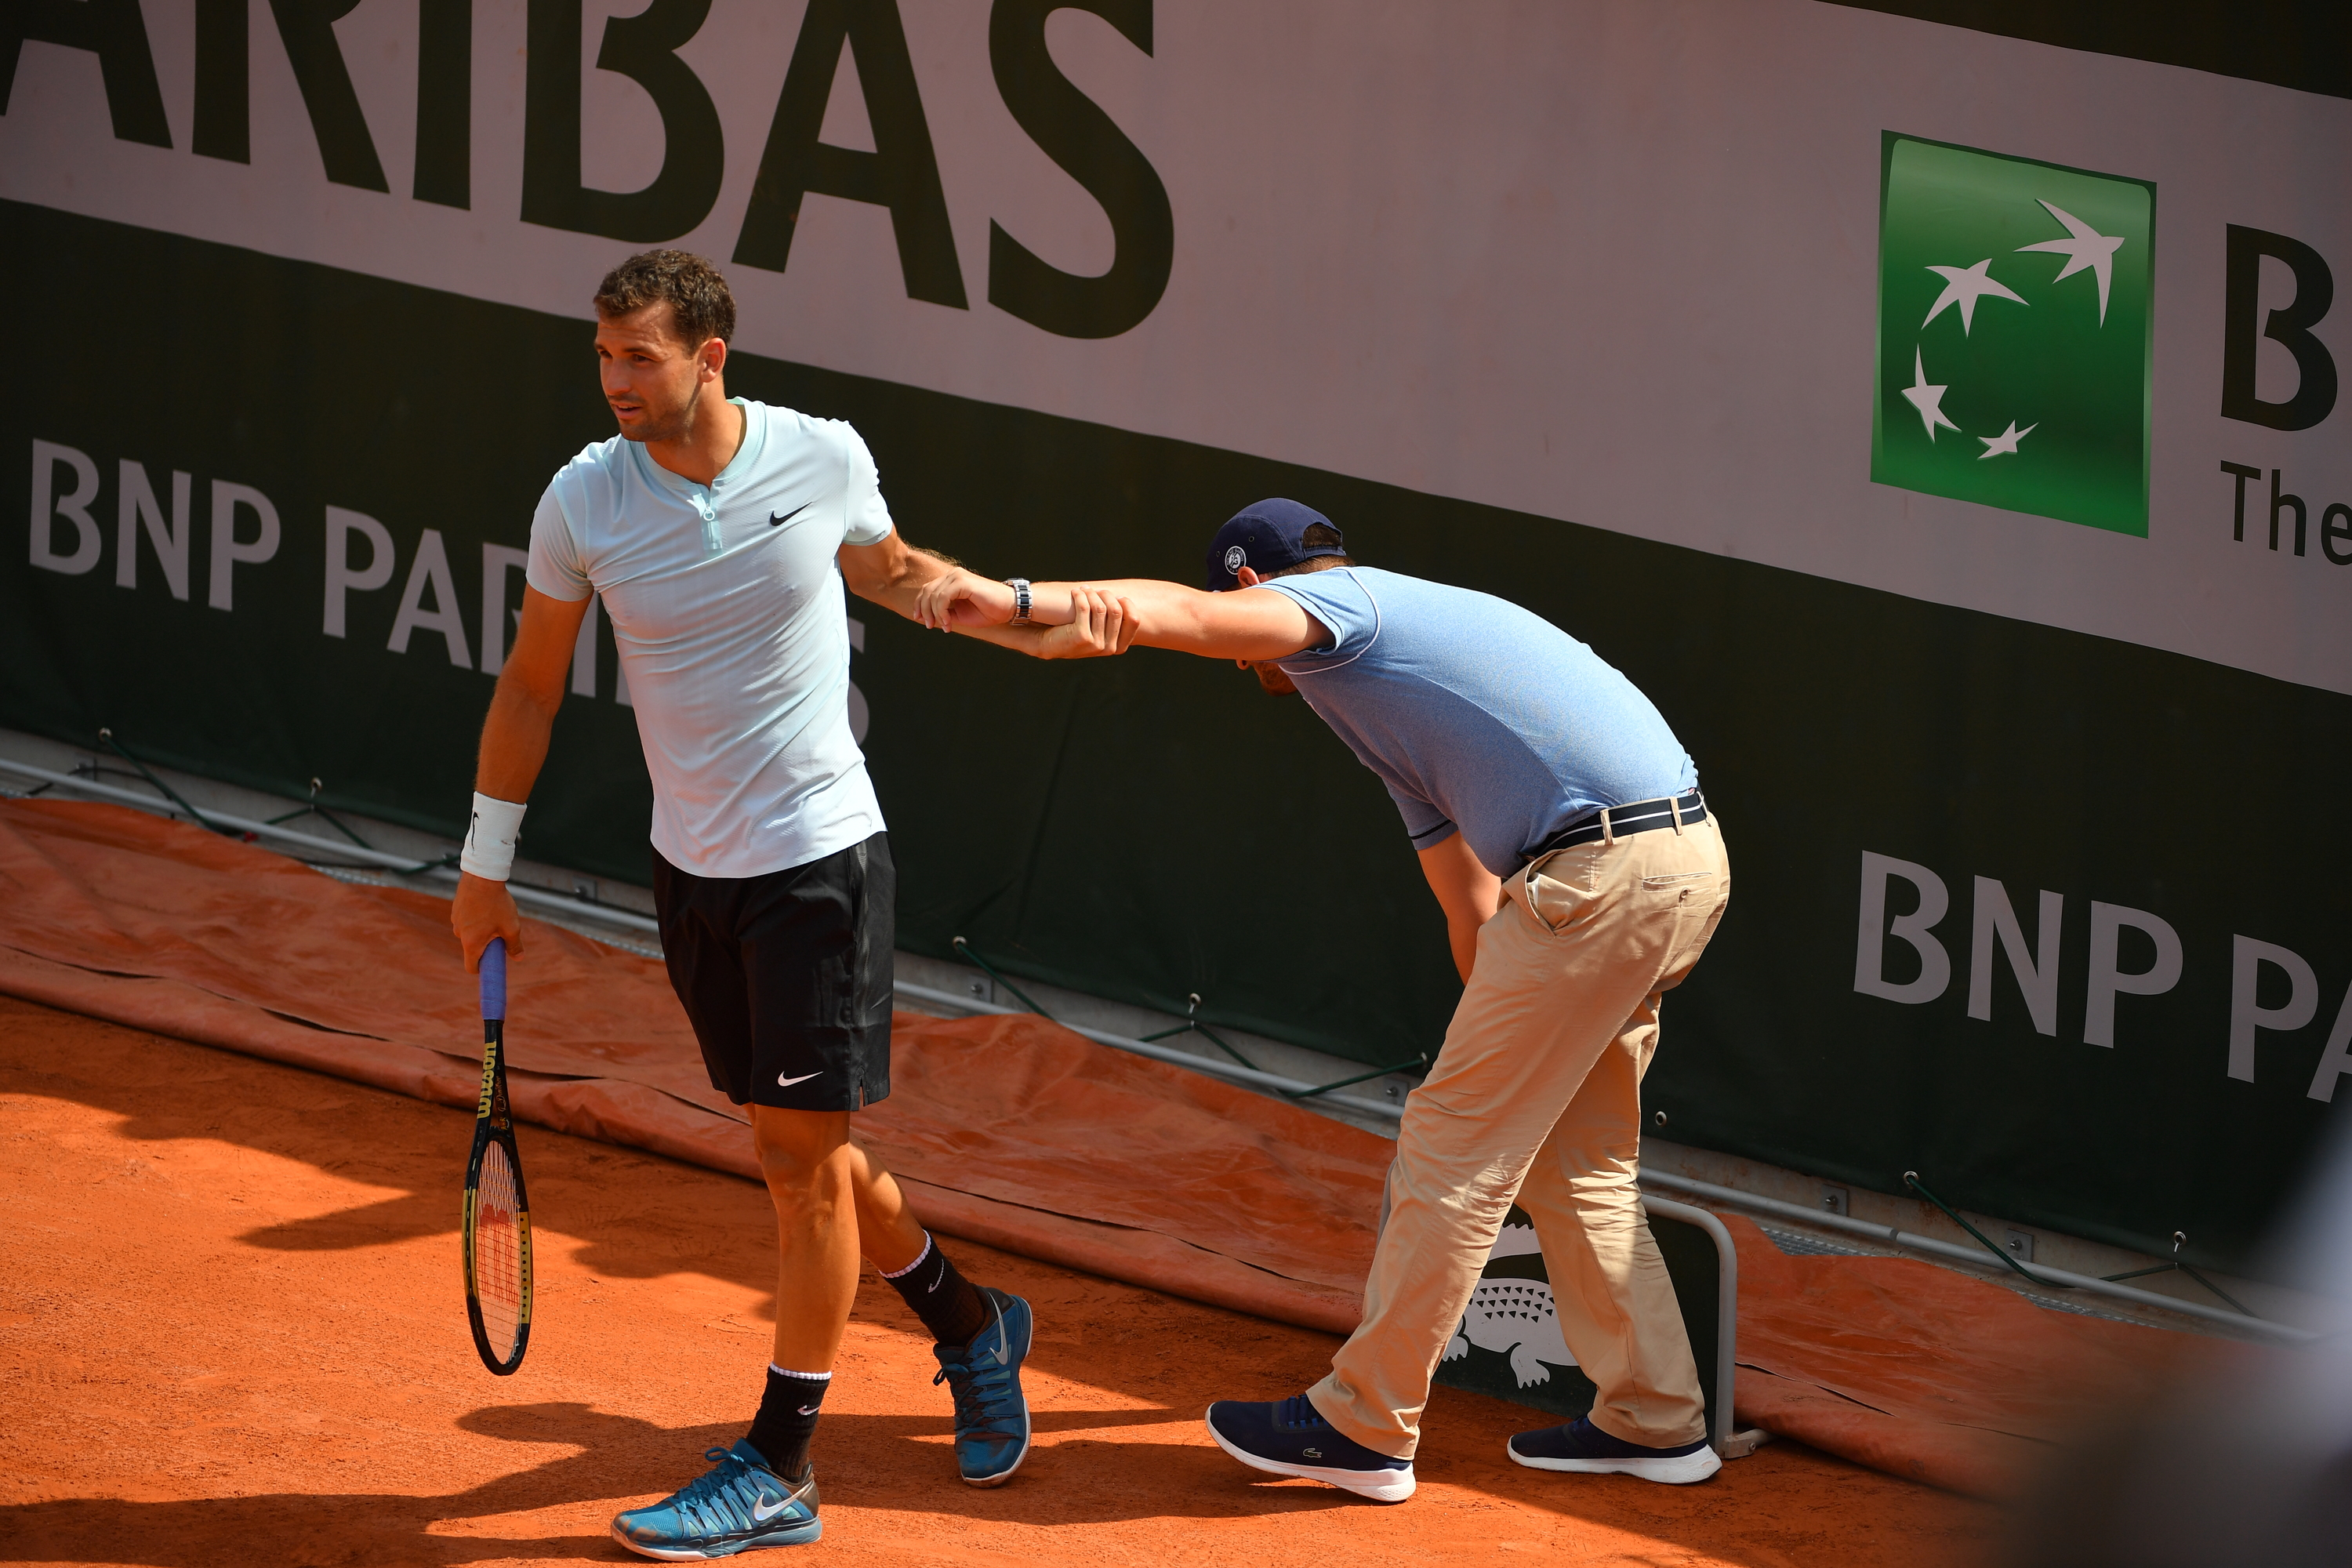 Grigor Dimitrov helping a line judge during Roland-Garros 2018